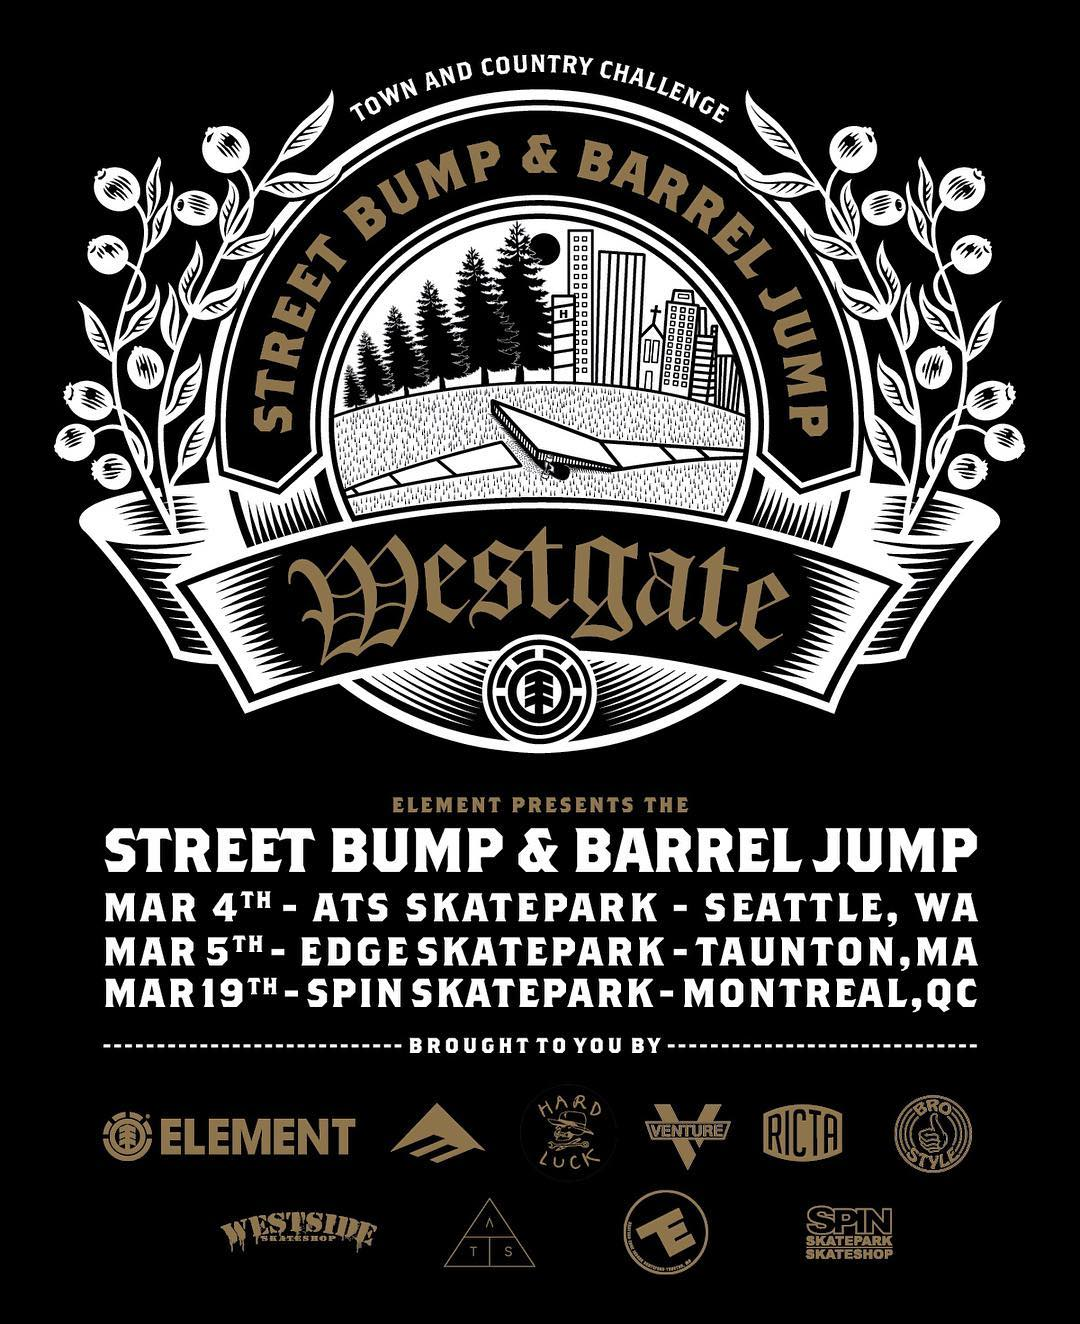 the @westgatebrandon #elementbarreljump continues this week in Seattle at @alltogetherskatepark and New England at @theedgeindoorskatepark >>> Brandon and @donnybarley will be out at the Edge event >>> #NoStruggleNoProgress